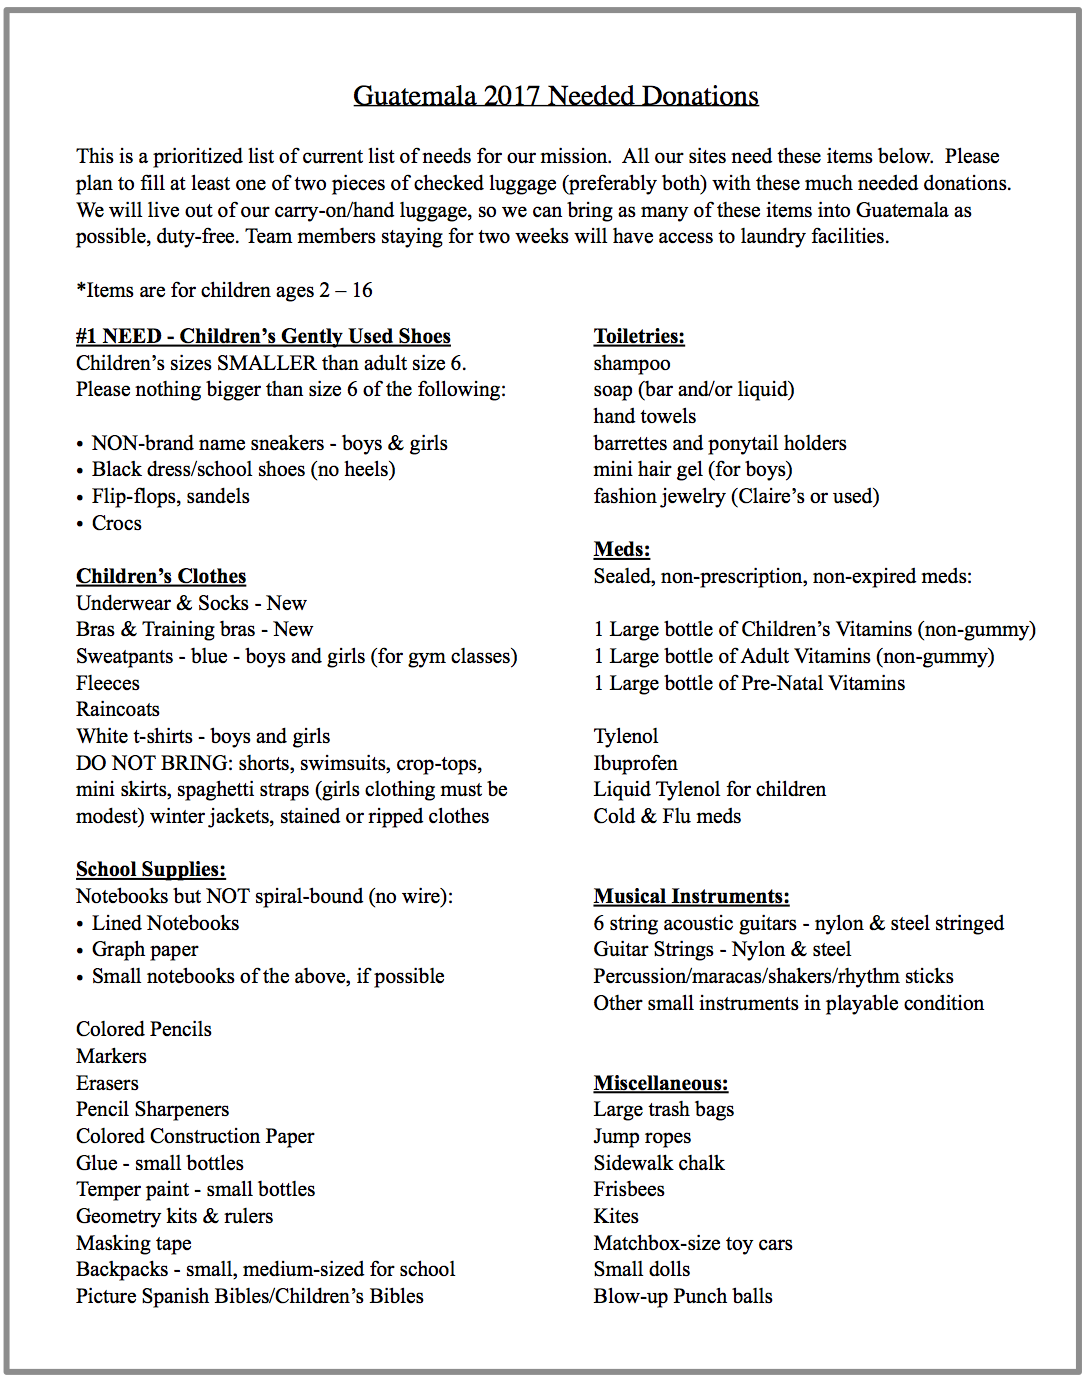 Guatemala_17_Donations_List_pages.png